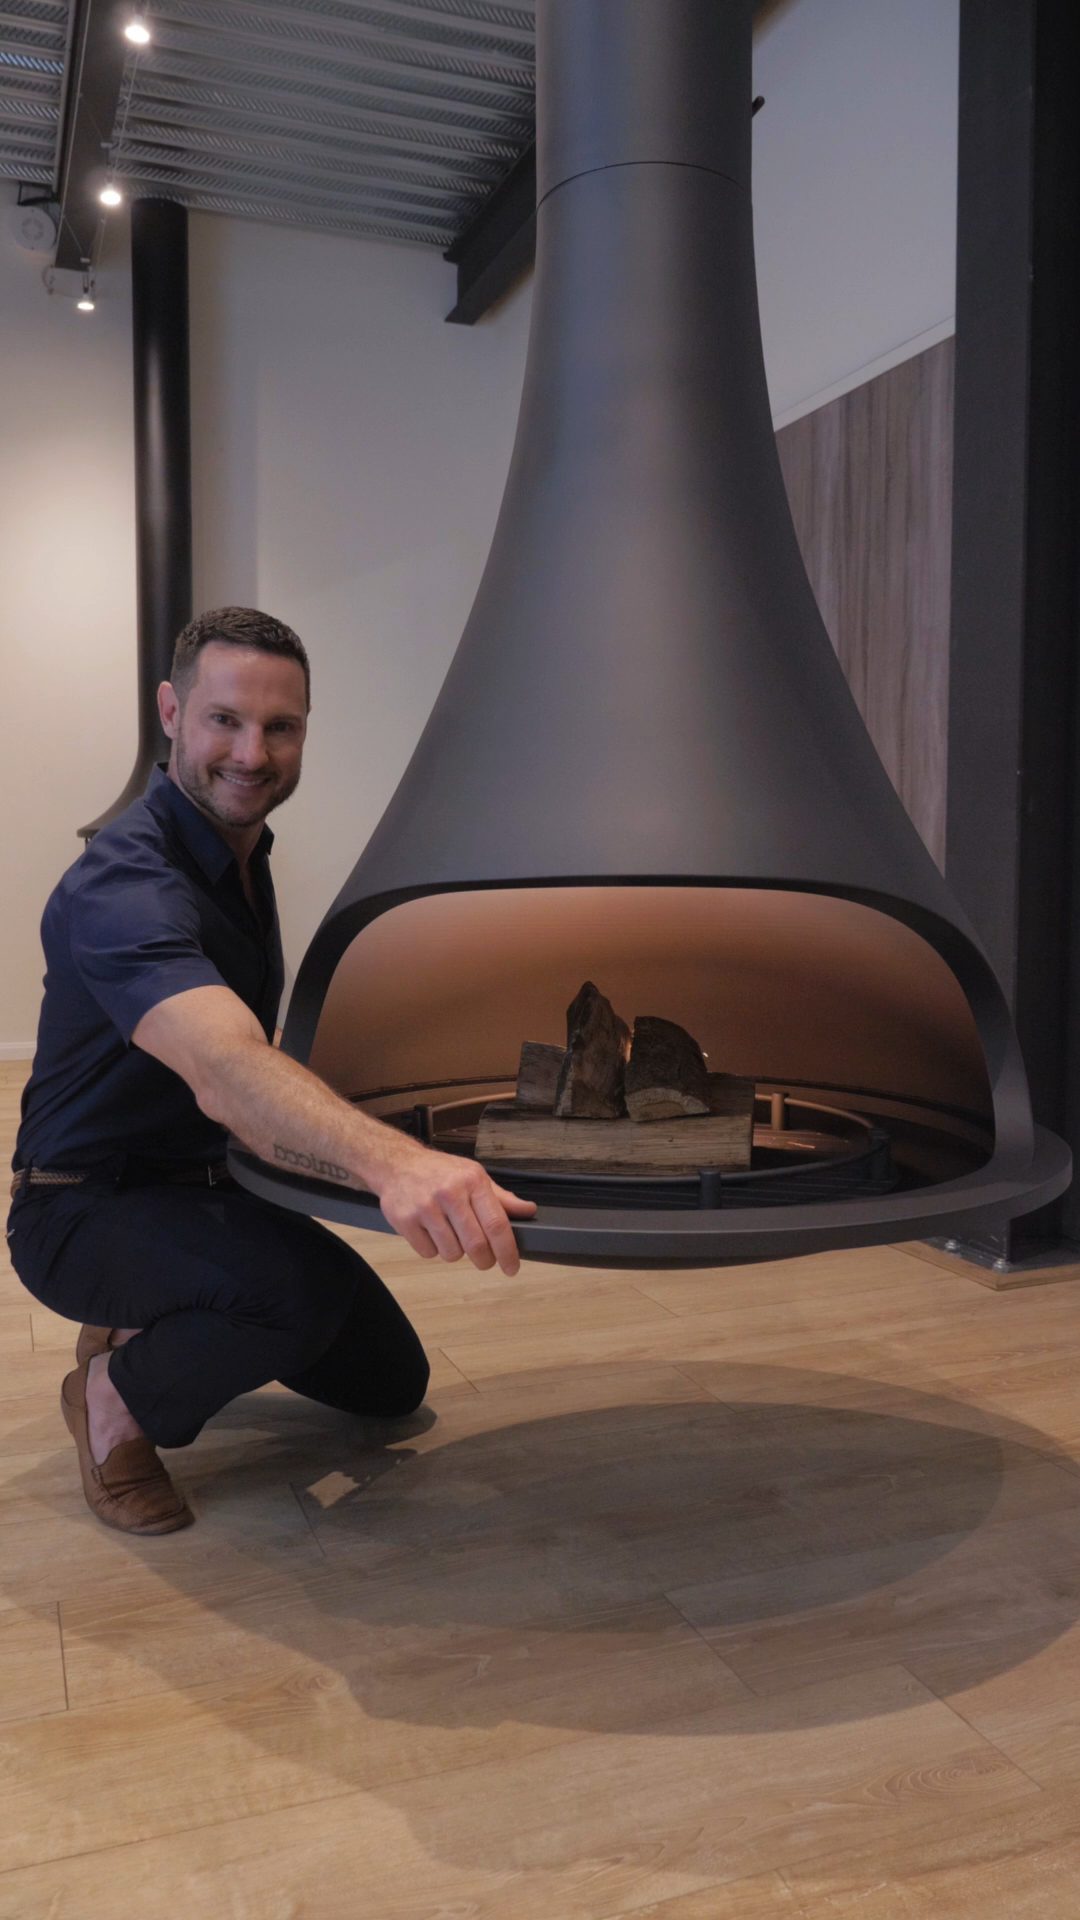 Looking to add a WOW factor in your home? Suspended and rotating the Bordelet Tatiana was one of Darren Palmer's favourites during his recent visit at the JCBordelet factory in Montpellier, France! Thinking of where to install it? Speak to one of our stockists!